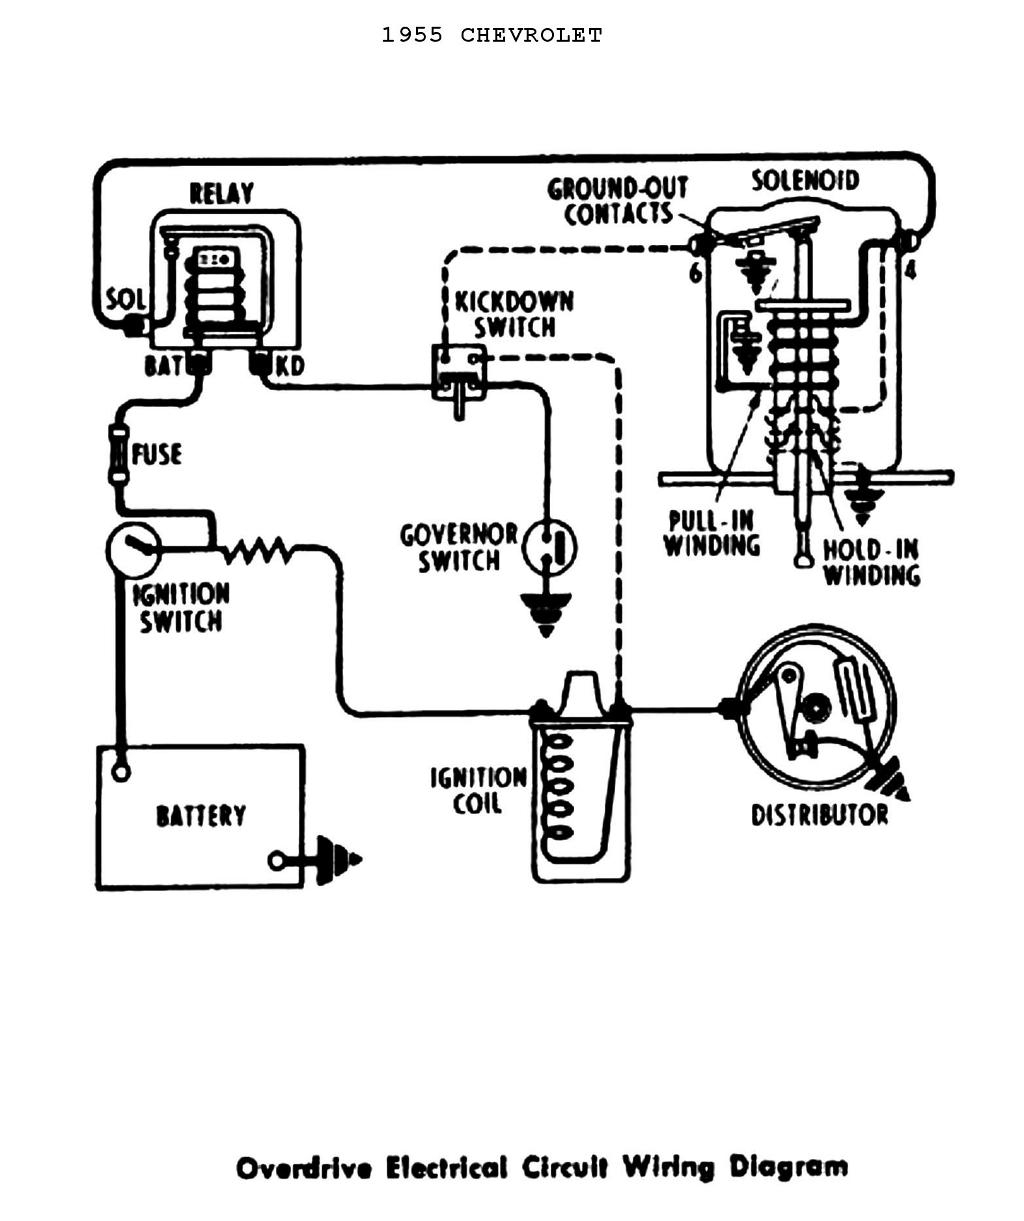 ford tractor ignition switch wiring diagram circuit diagrams image